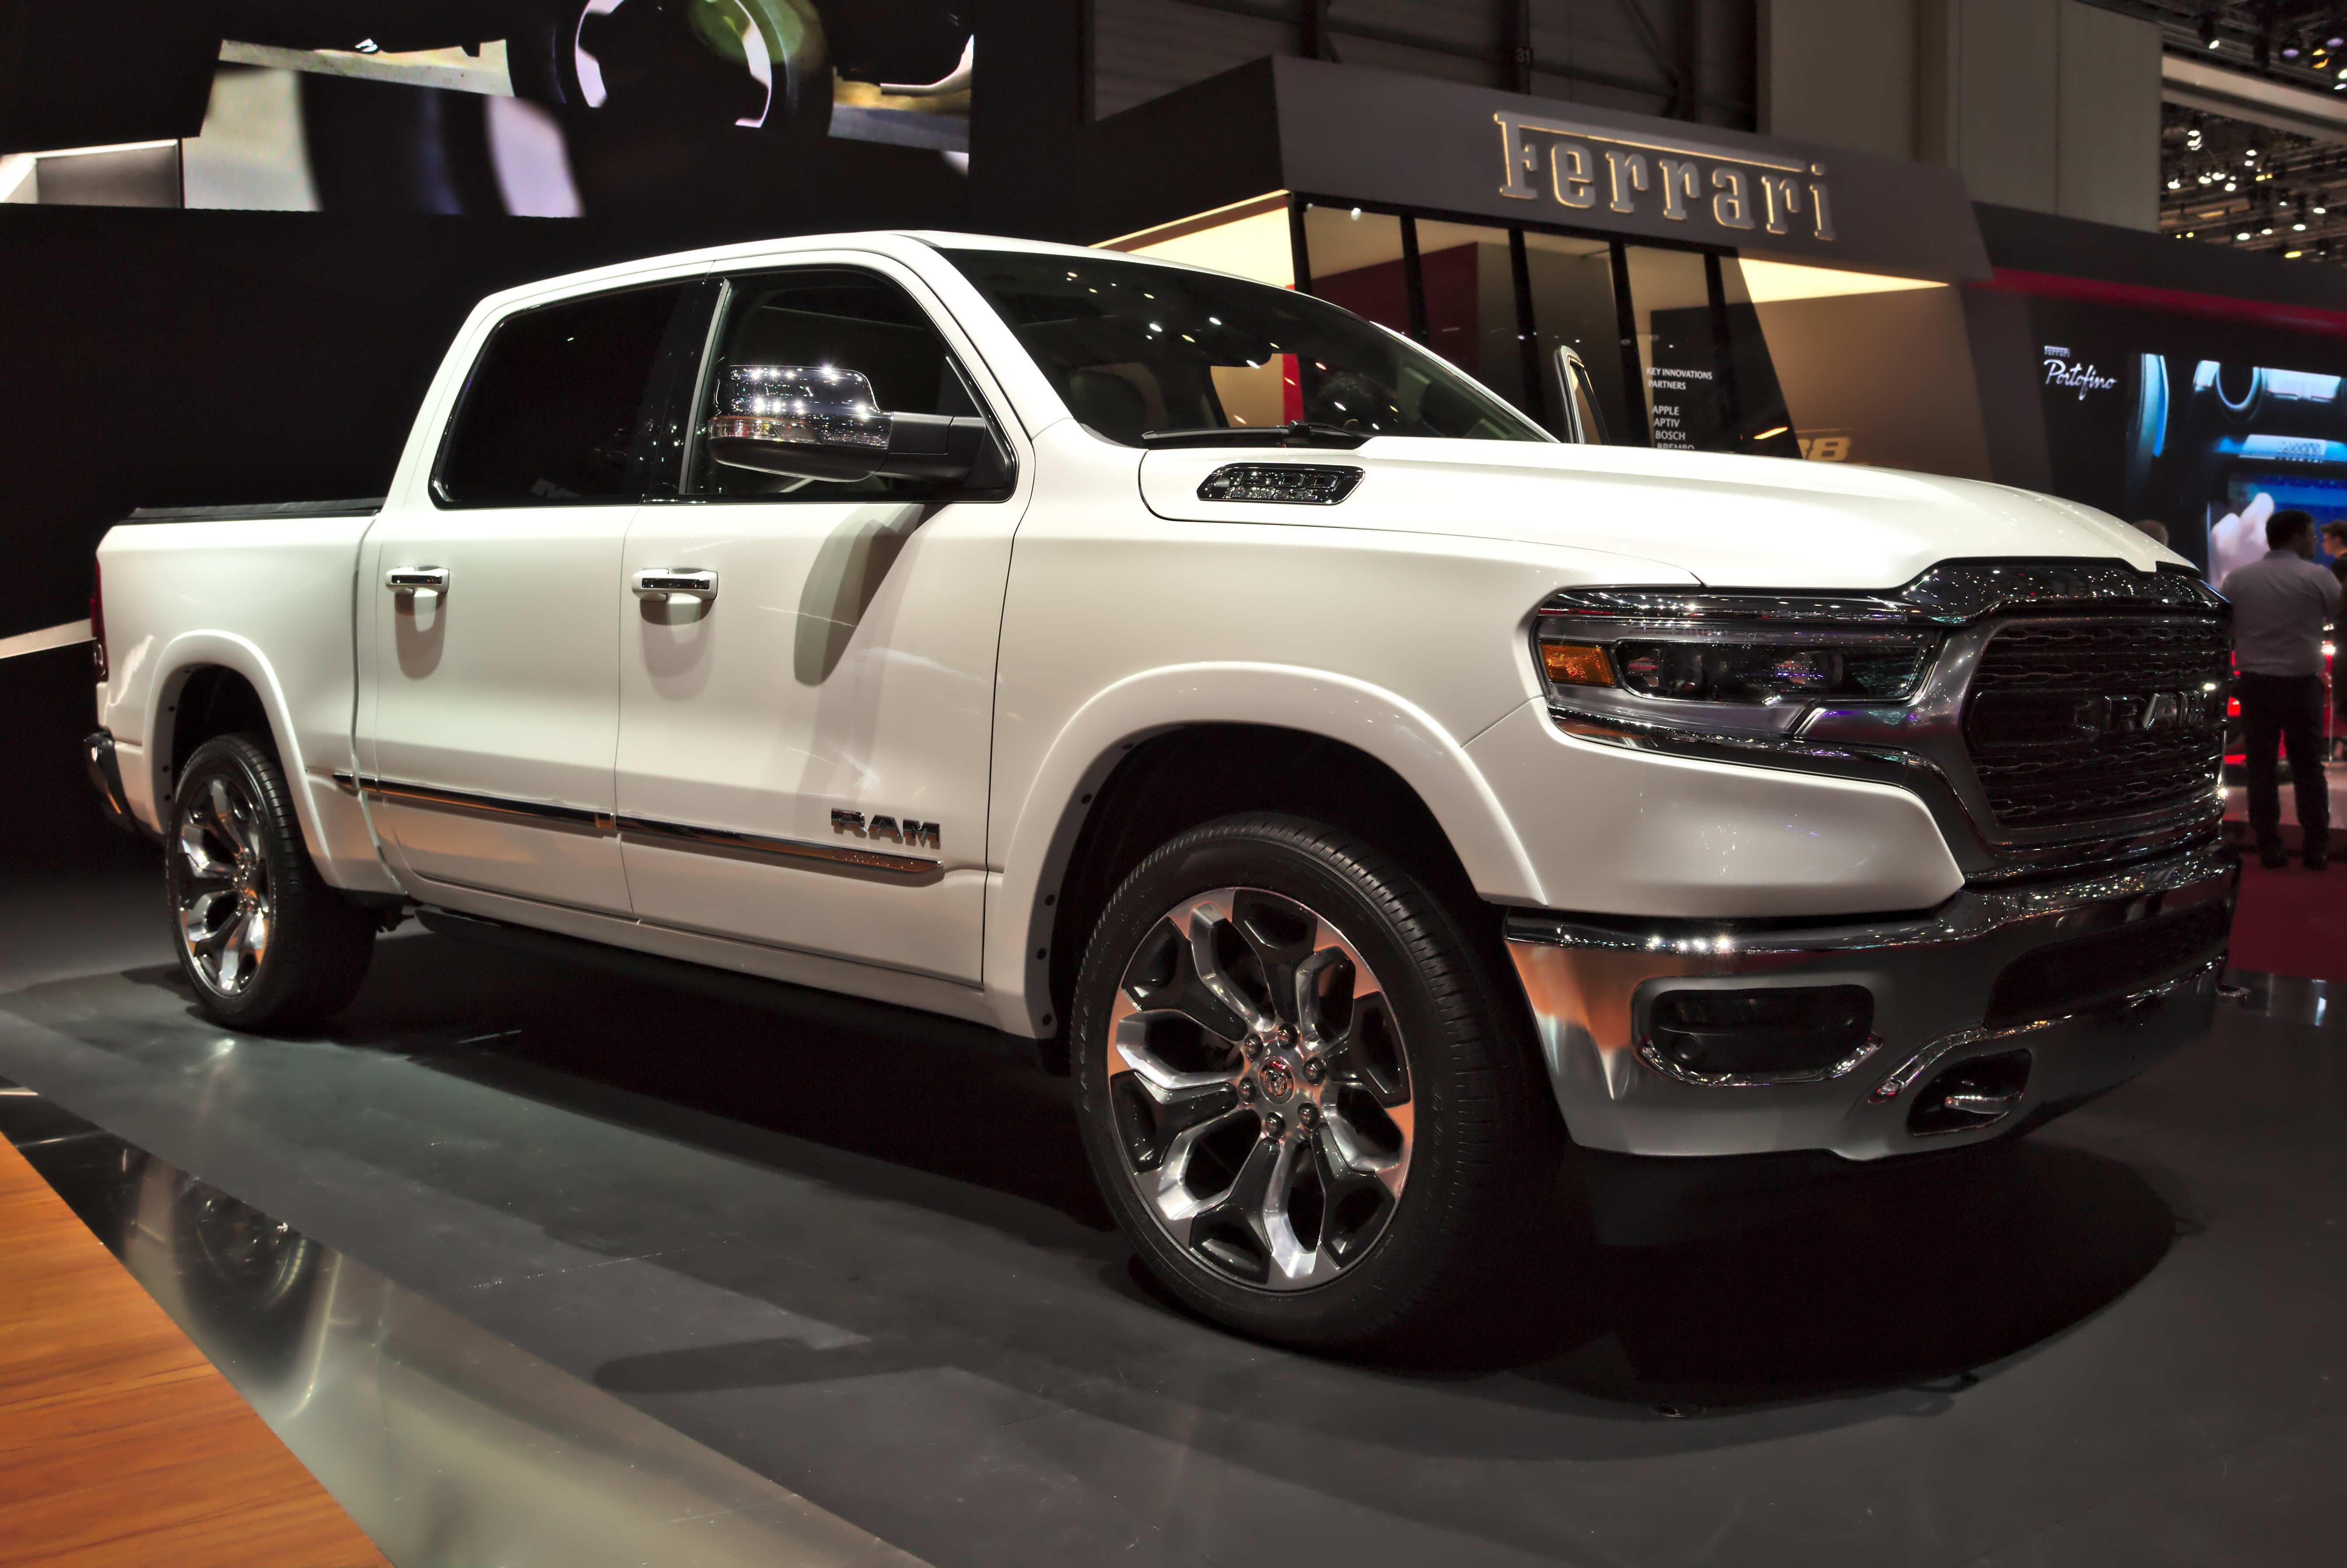 54 Best Review New Dodge Ram 2019 Quad Cab Redesign And Concept Images with New Dodge Ram 2019 Quad Cab Redesign And Concept